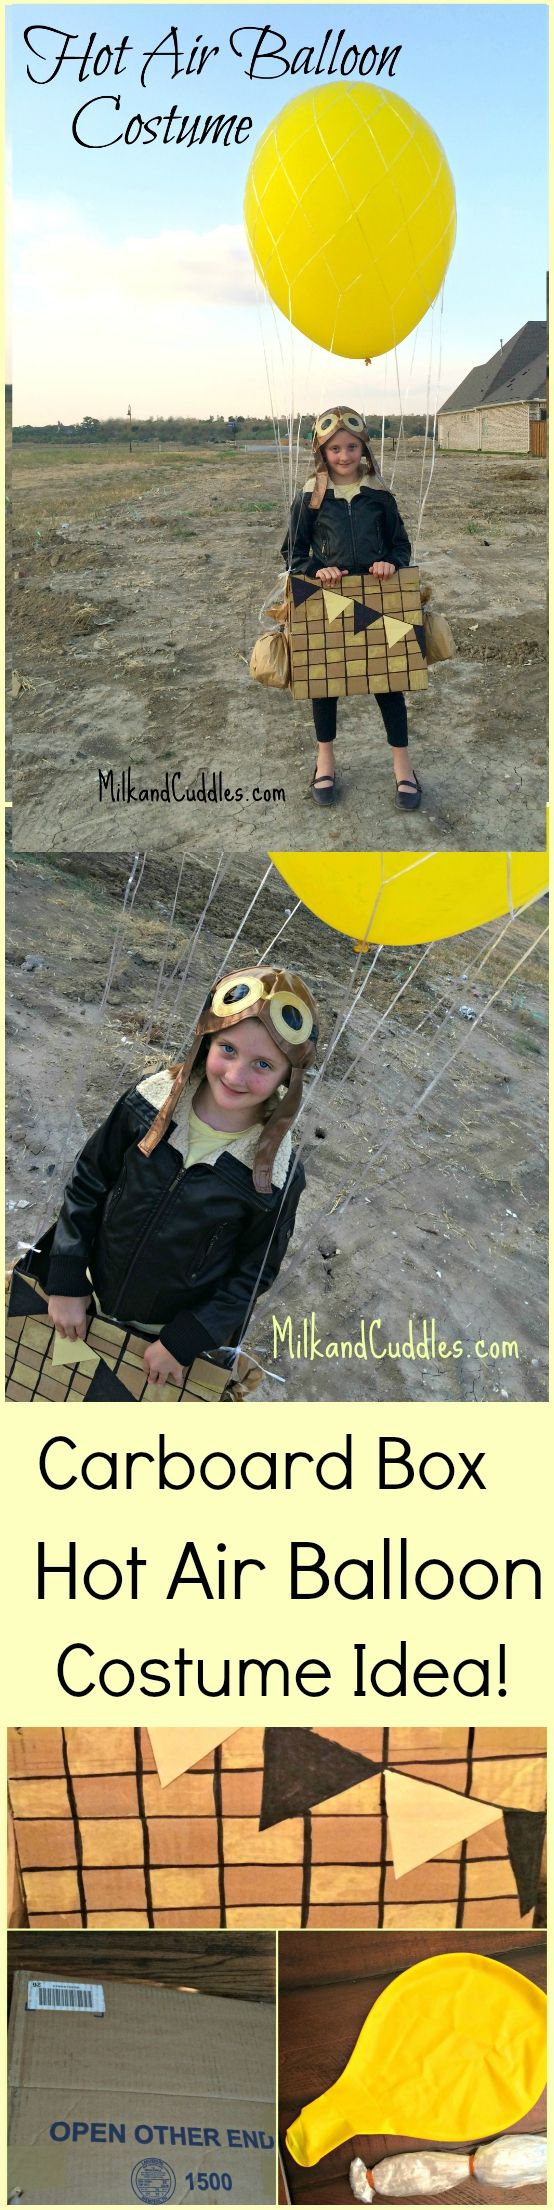 Aren't Cardboard box costumes the best?  There always seem to be a mound of boxes laying around our garage, and this Hot Air Balloon Costume is the perfect use for them! Not only is this DIY costume super unique, it's also very easy to make.  Here's how! #cardboardBox #Costumes #easycostumes